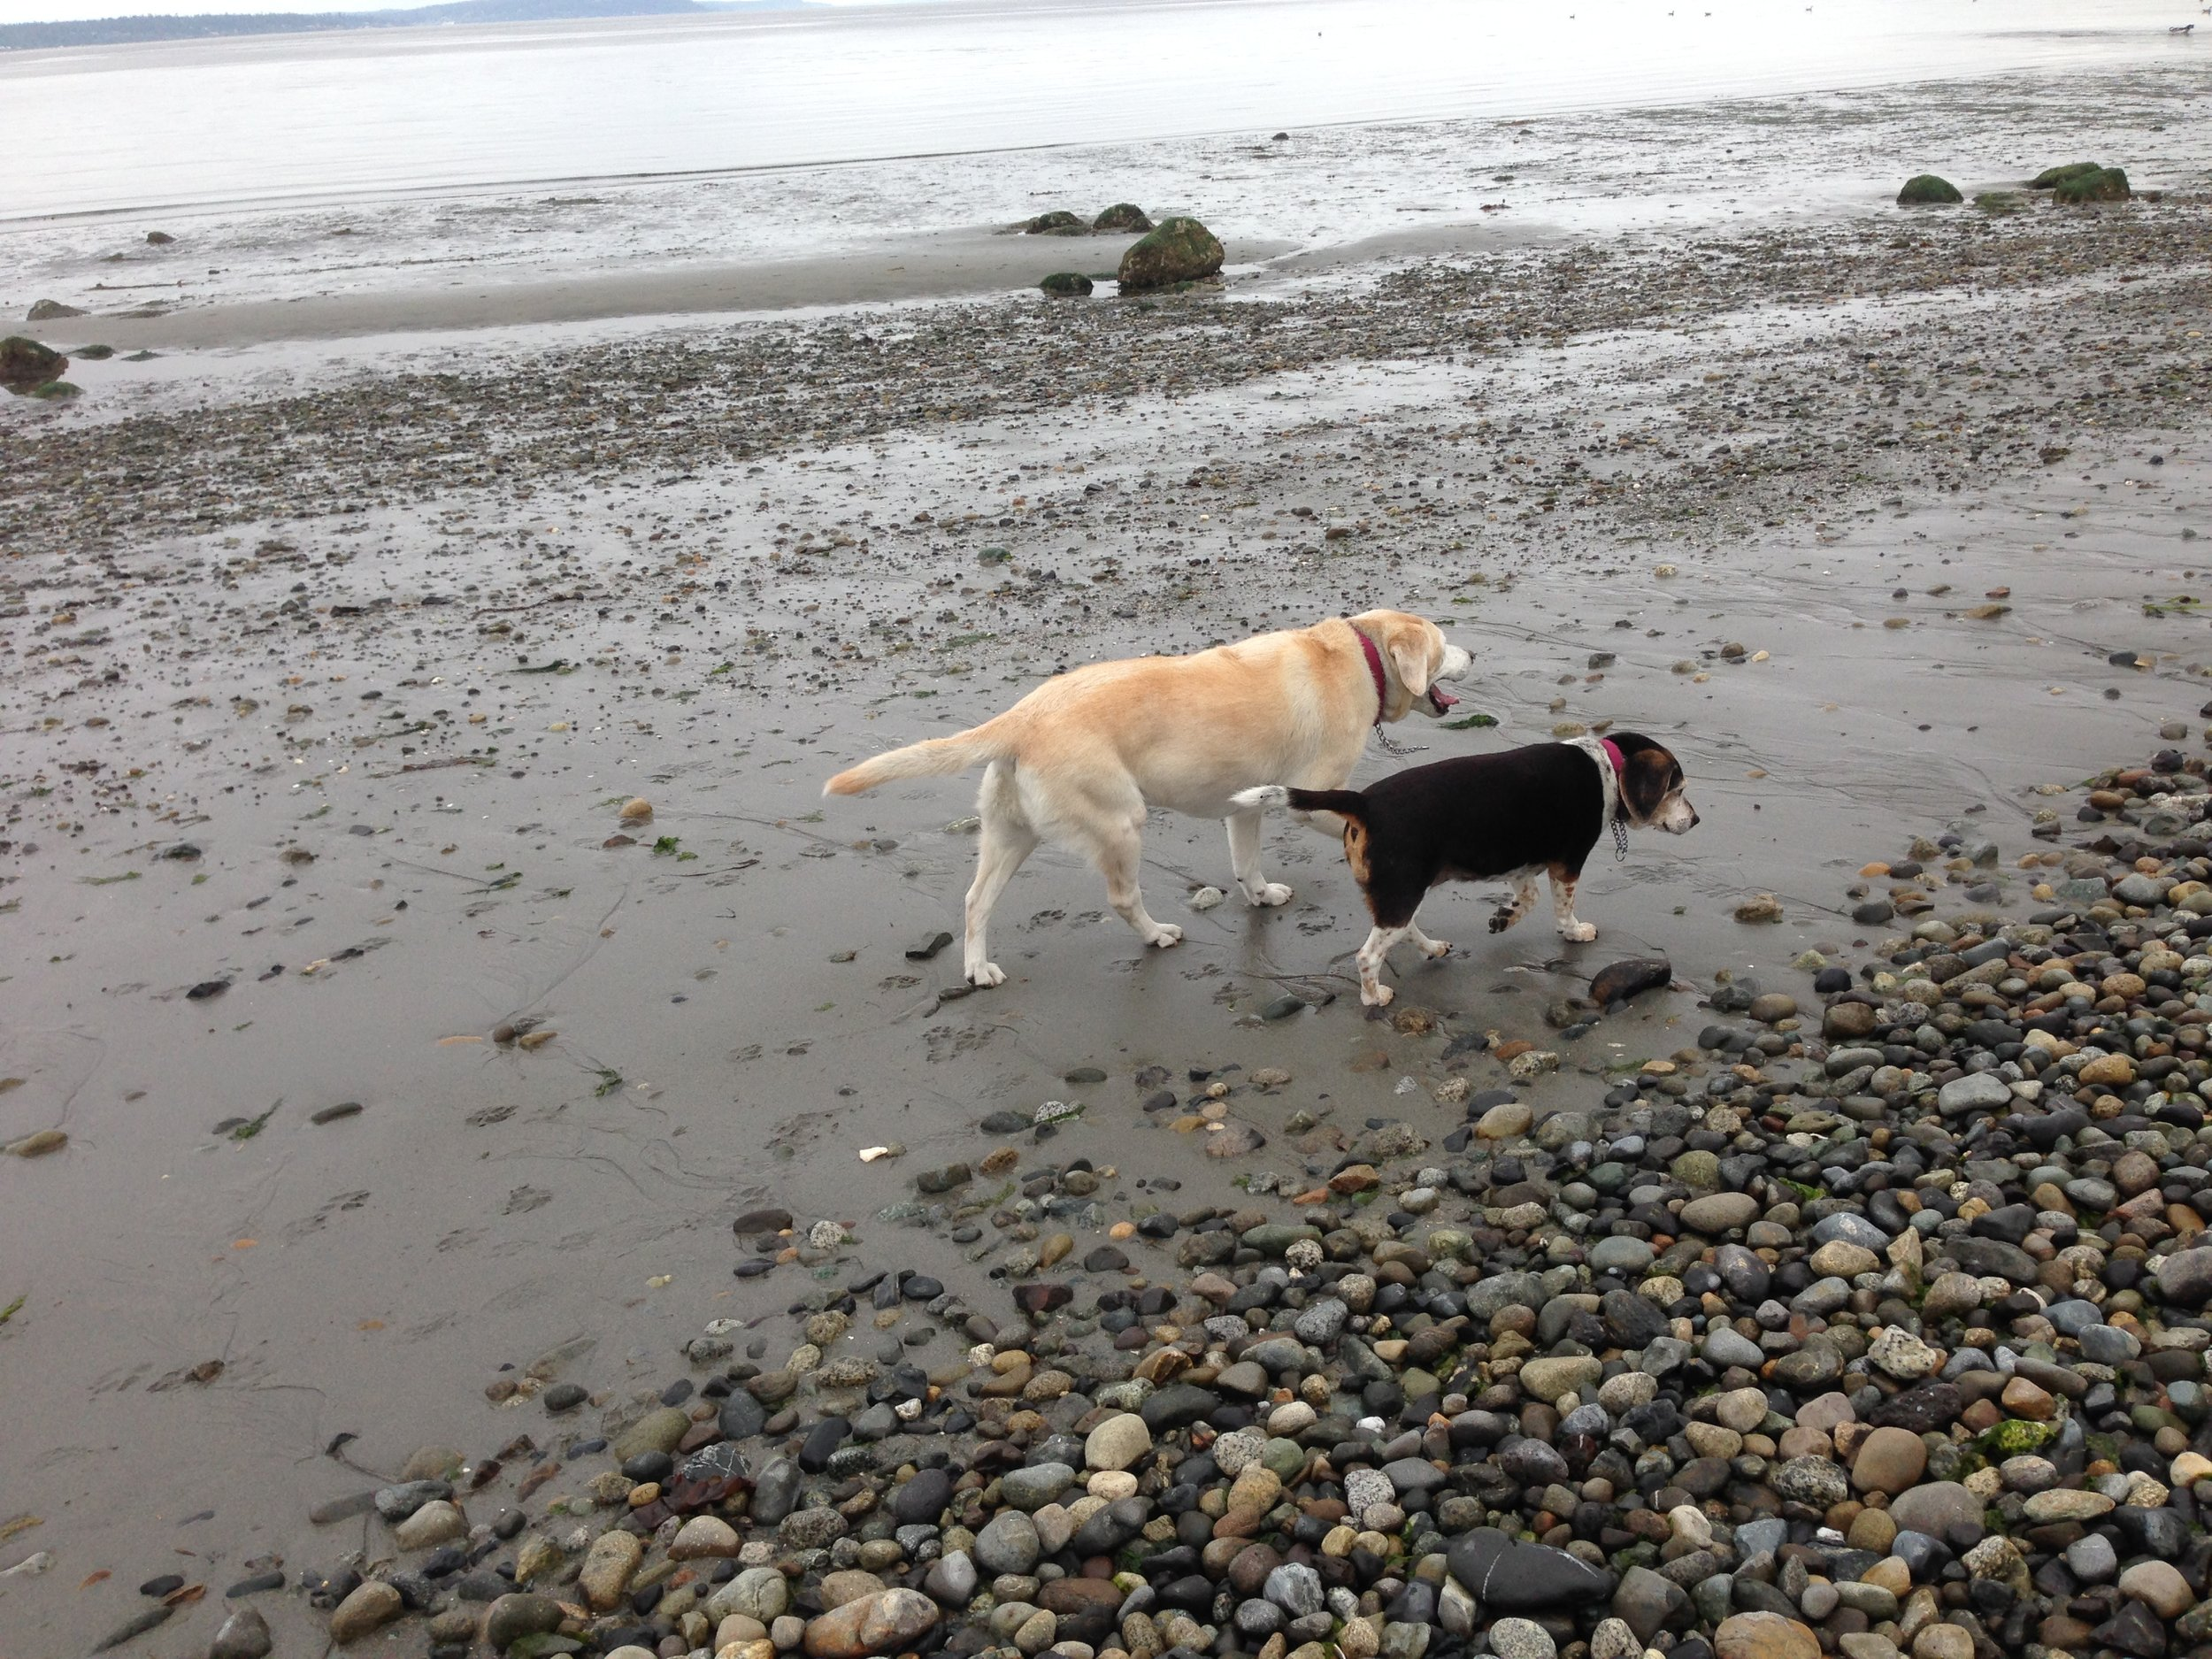 Martini and Latte Walking along the beach.